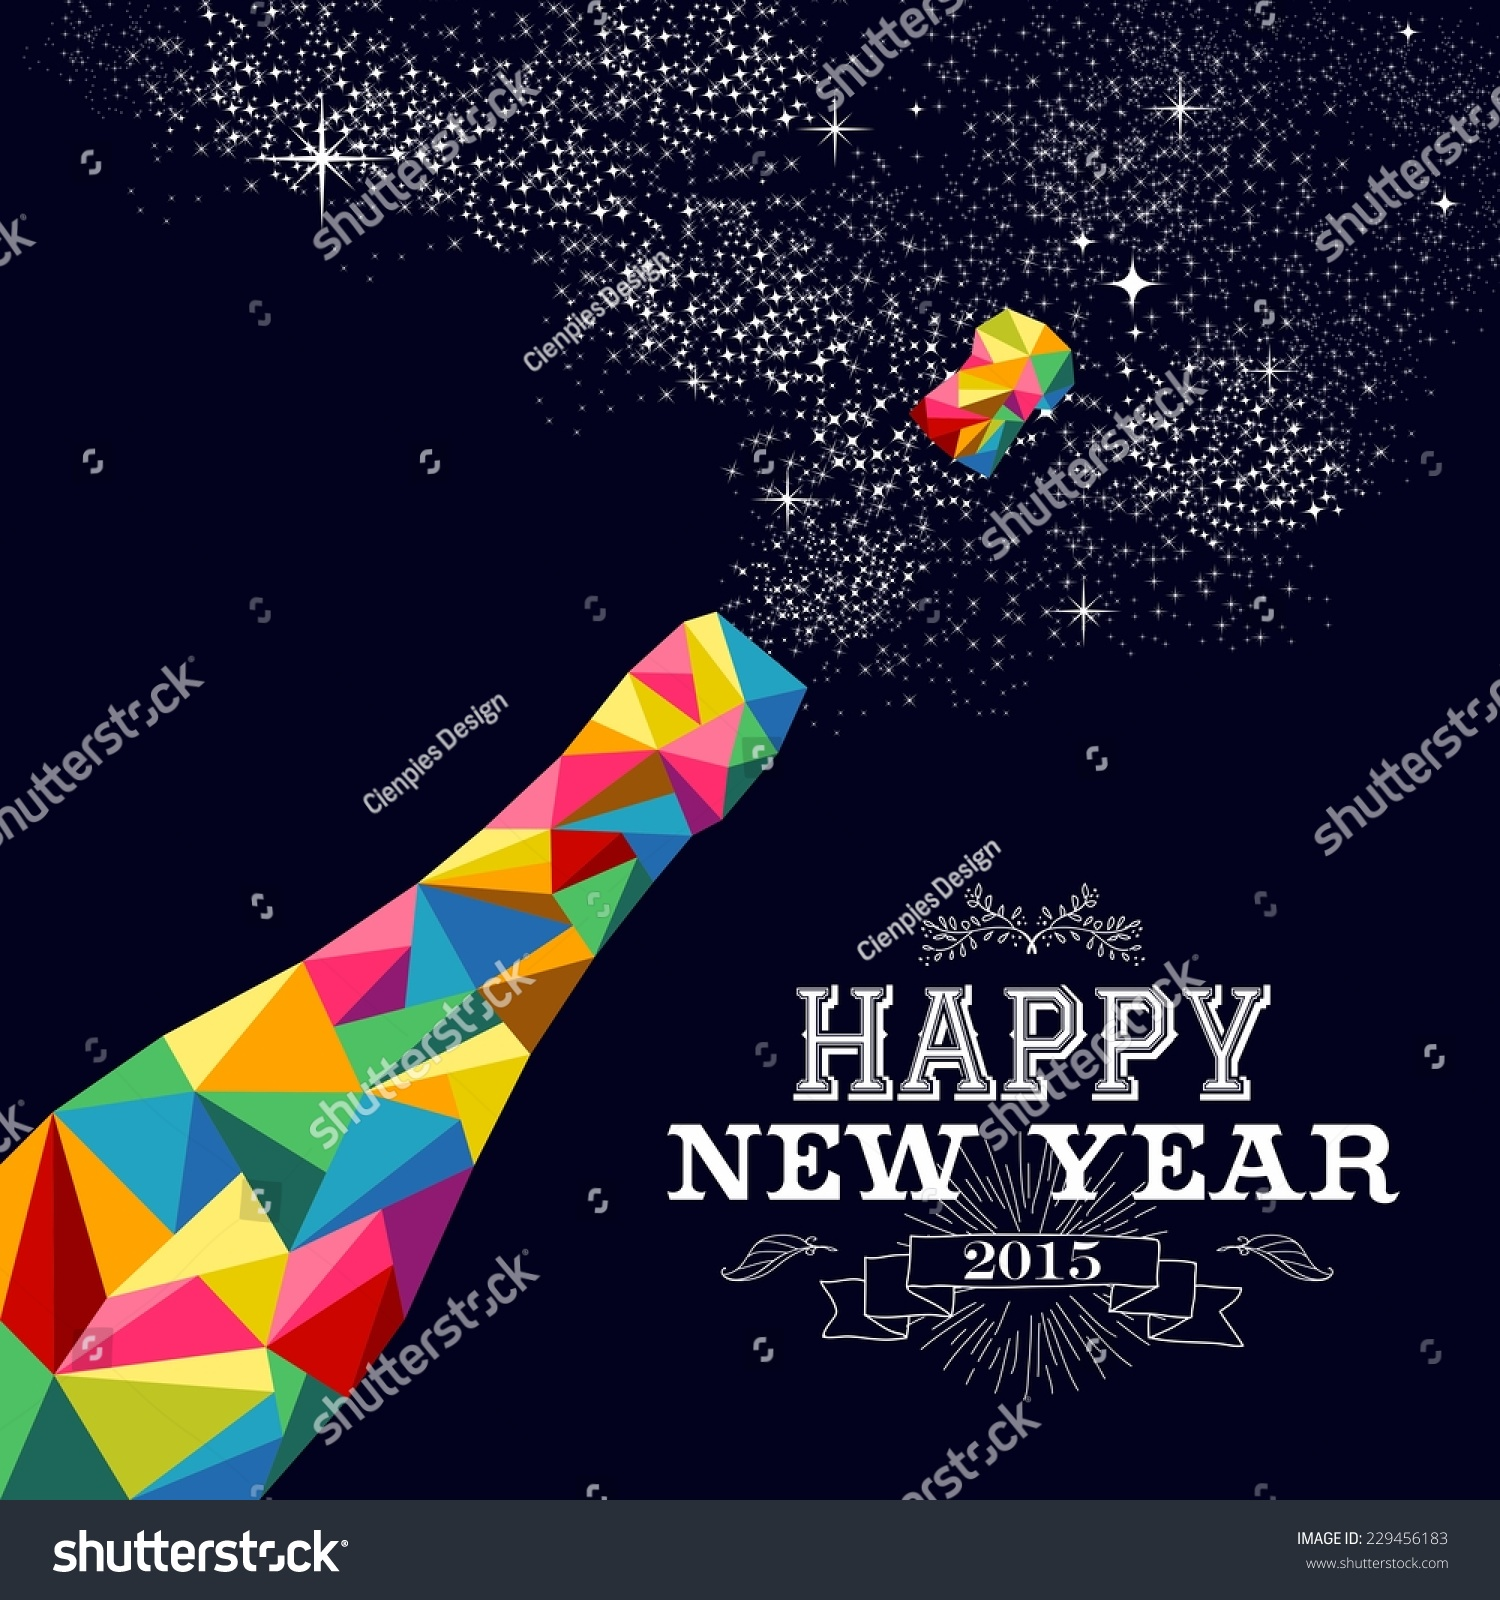 Happy New Year 2015 Greeting Card Stock Vector 229456183 ...